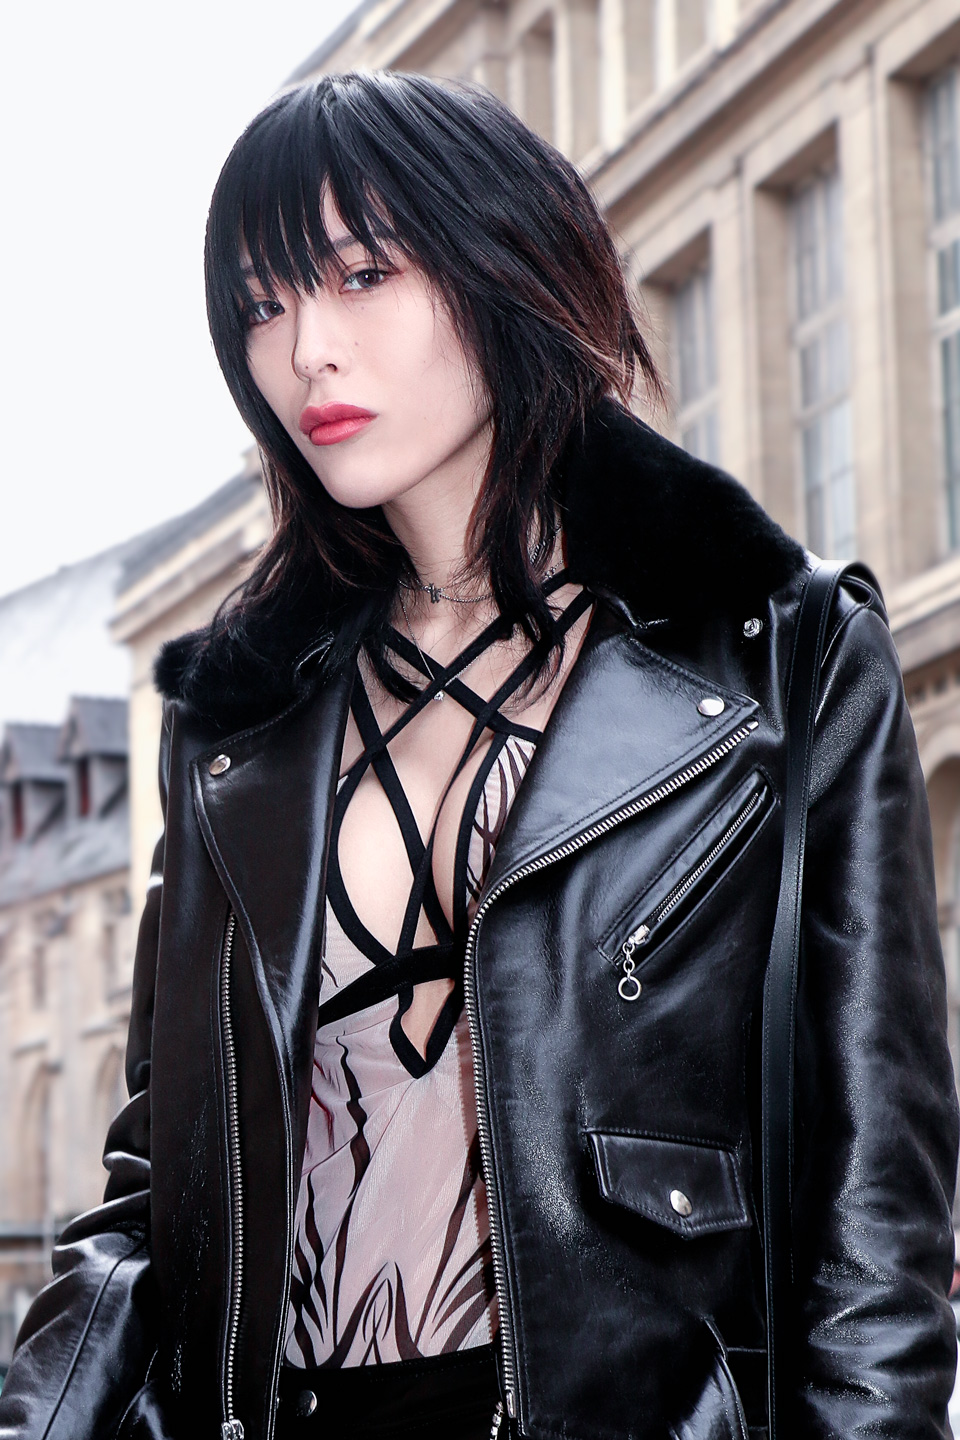 French Photographer Fashion Photography Ann Demeulemeester / Asian Model